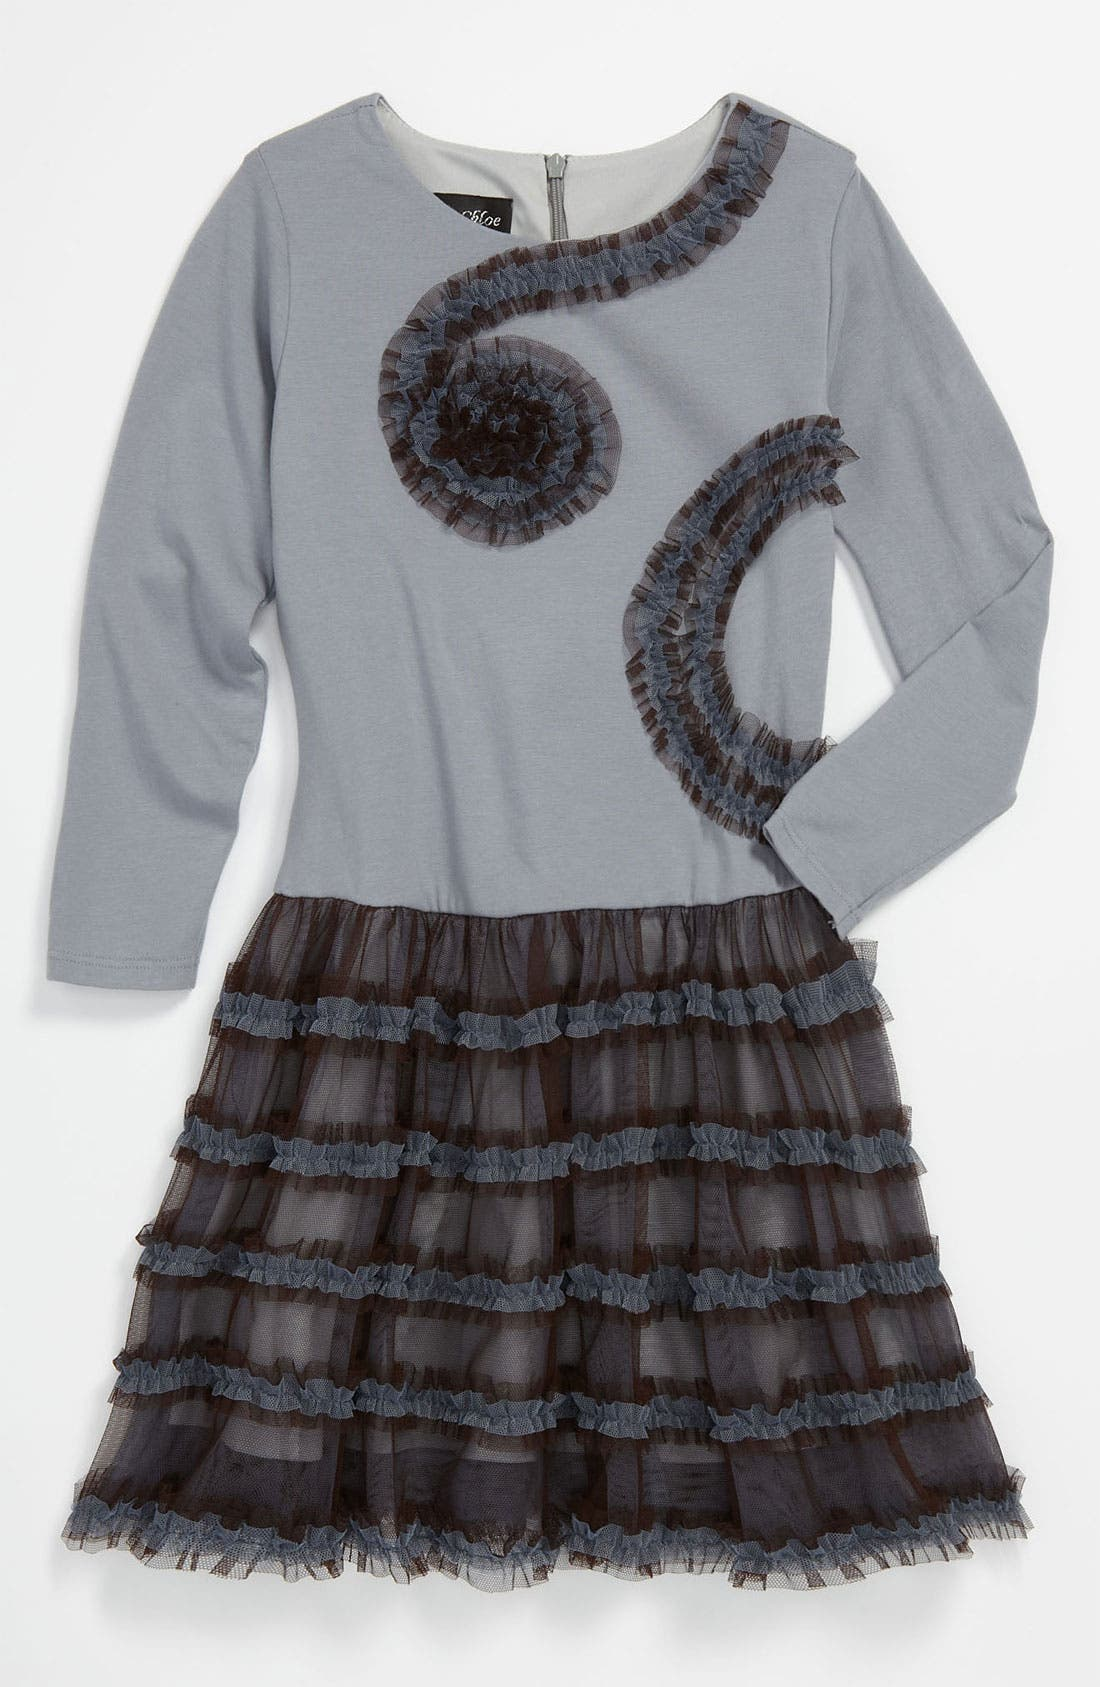 Main Image - Isobella & Chloe 'Blue Moon' Mesh Ruffle Dress (Little Girls & Big Girls)